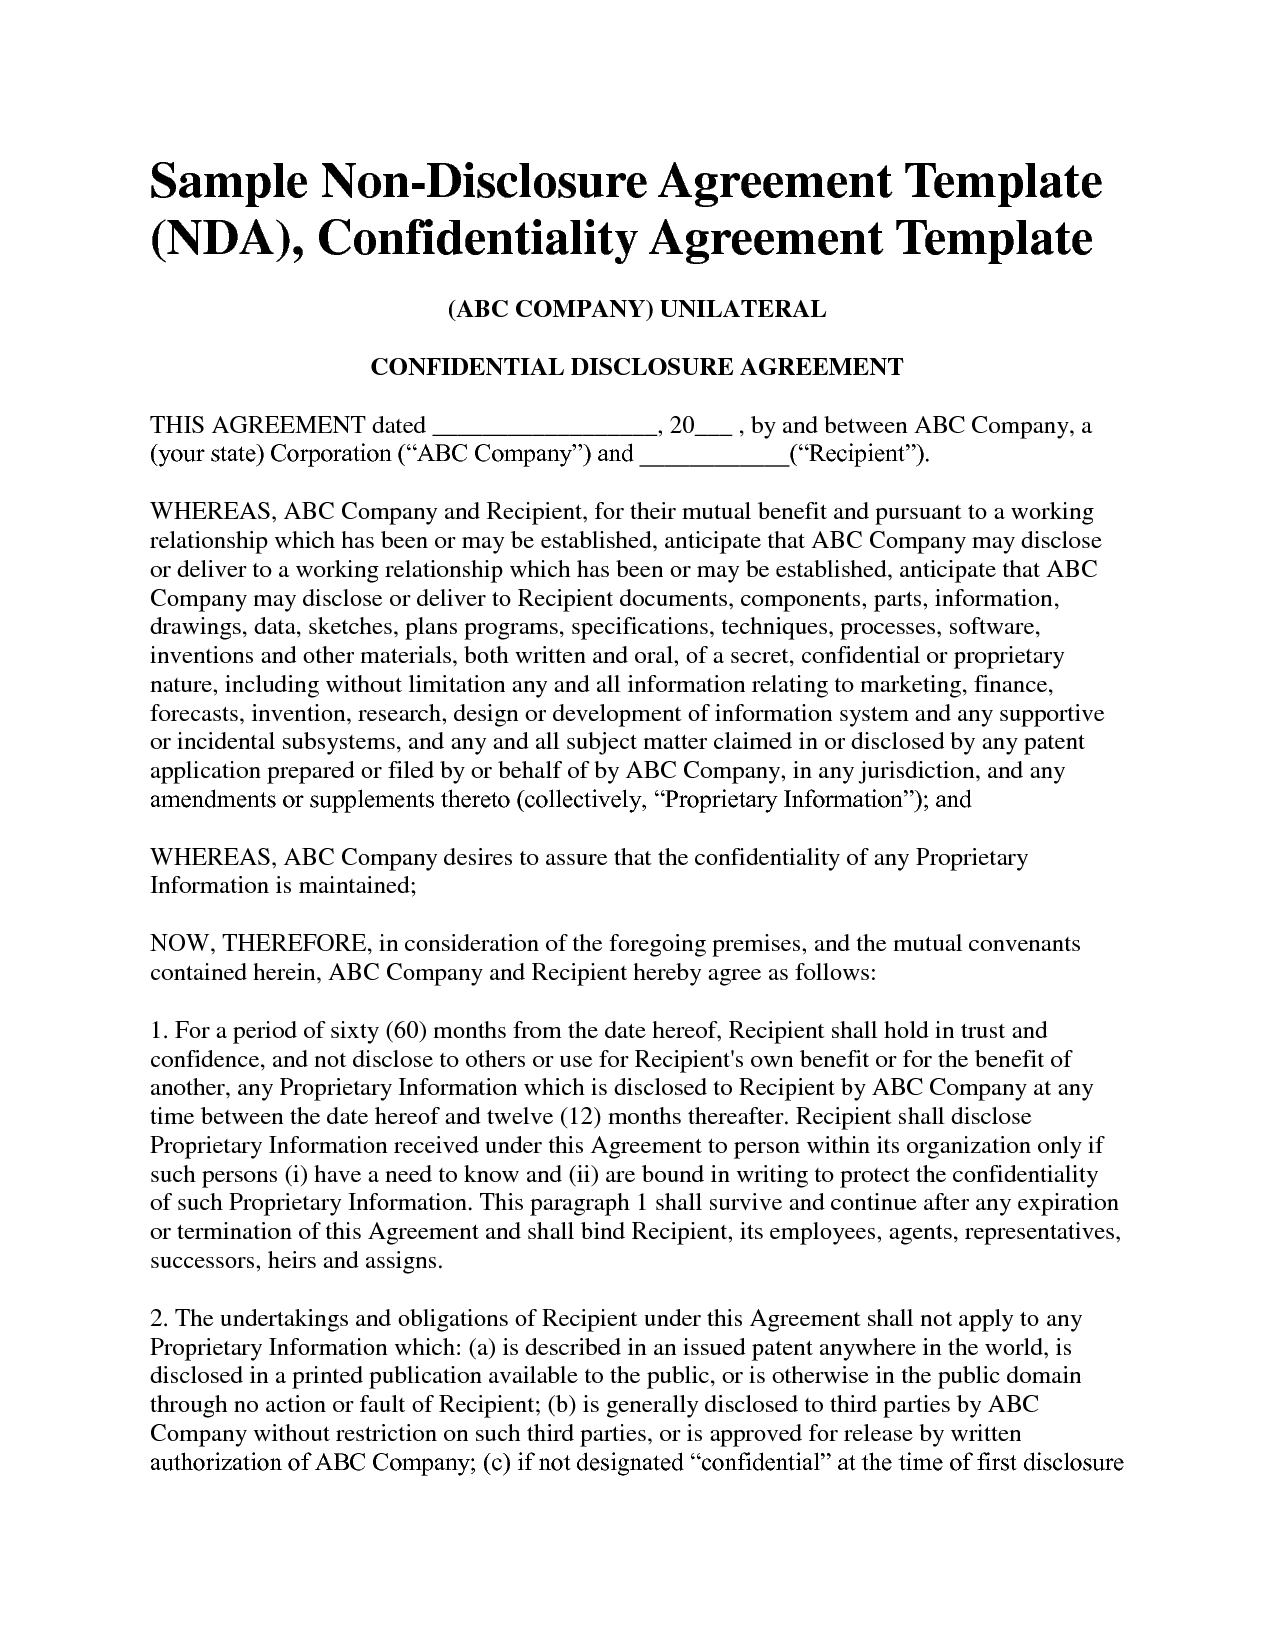 Non Disclosure Agreement Template Free Sample Nda Template Mvrsqrn - Free Printable Non Disclosure Agreement Form